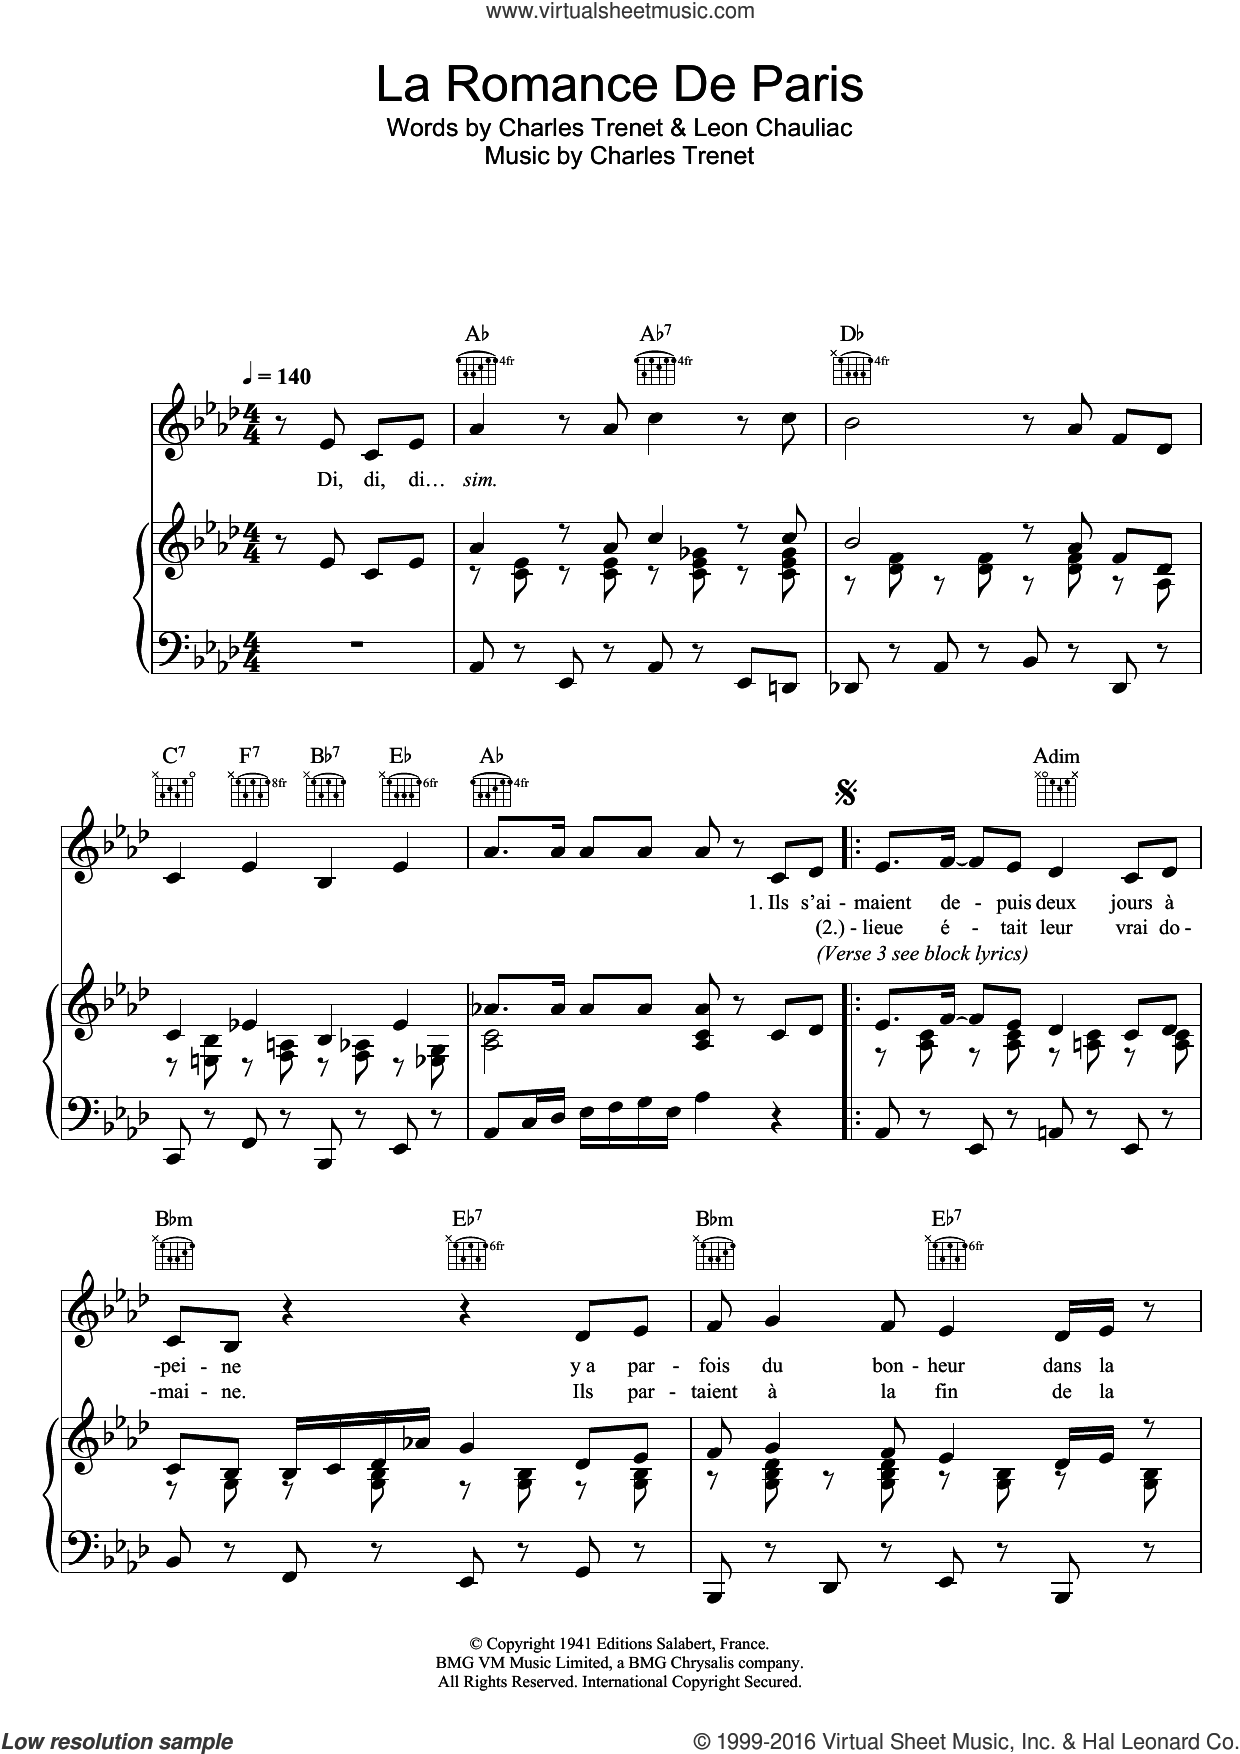 La Romance De Paris sheet music for voice, piano or guitar by Zaz, Charles Trenet and Leon Chauliac, intermediate skill level